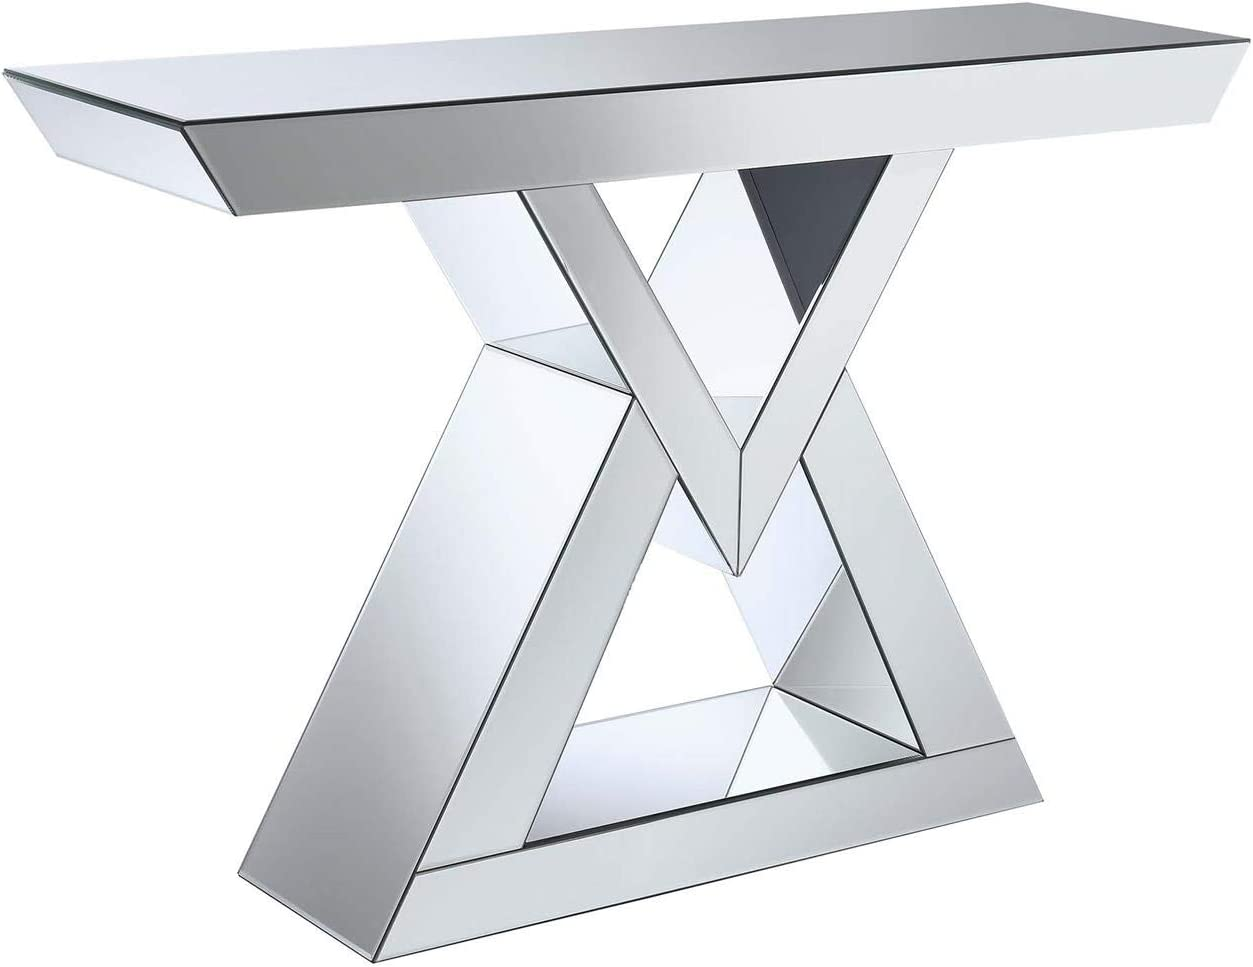 Coaster Home Furnishings Coaster Contemporary Triangle Base Silver Console Table with Mirrored Panels